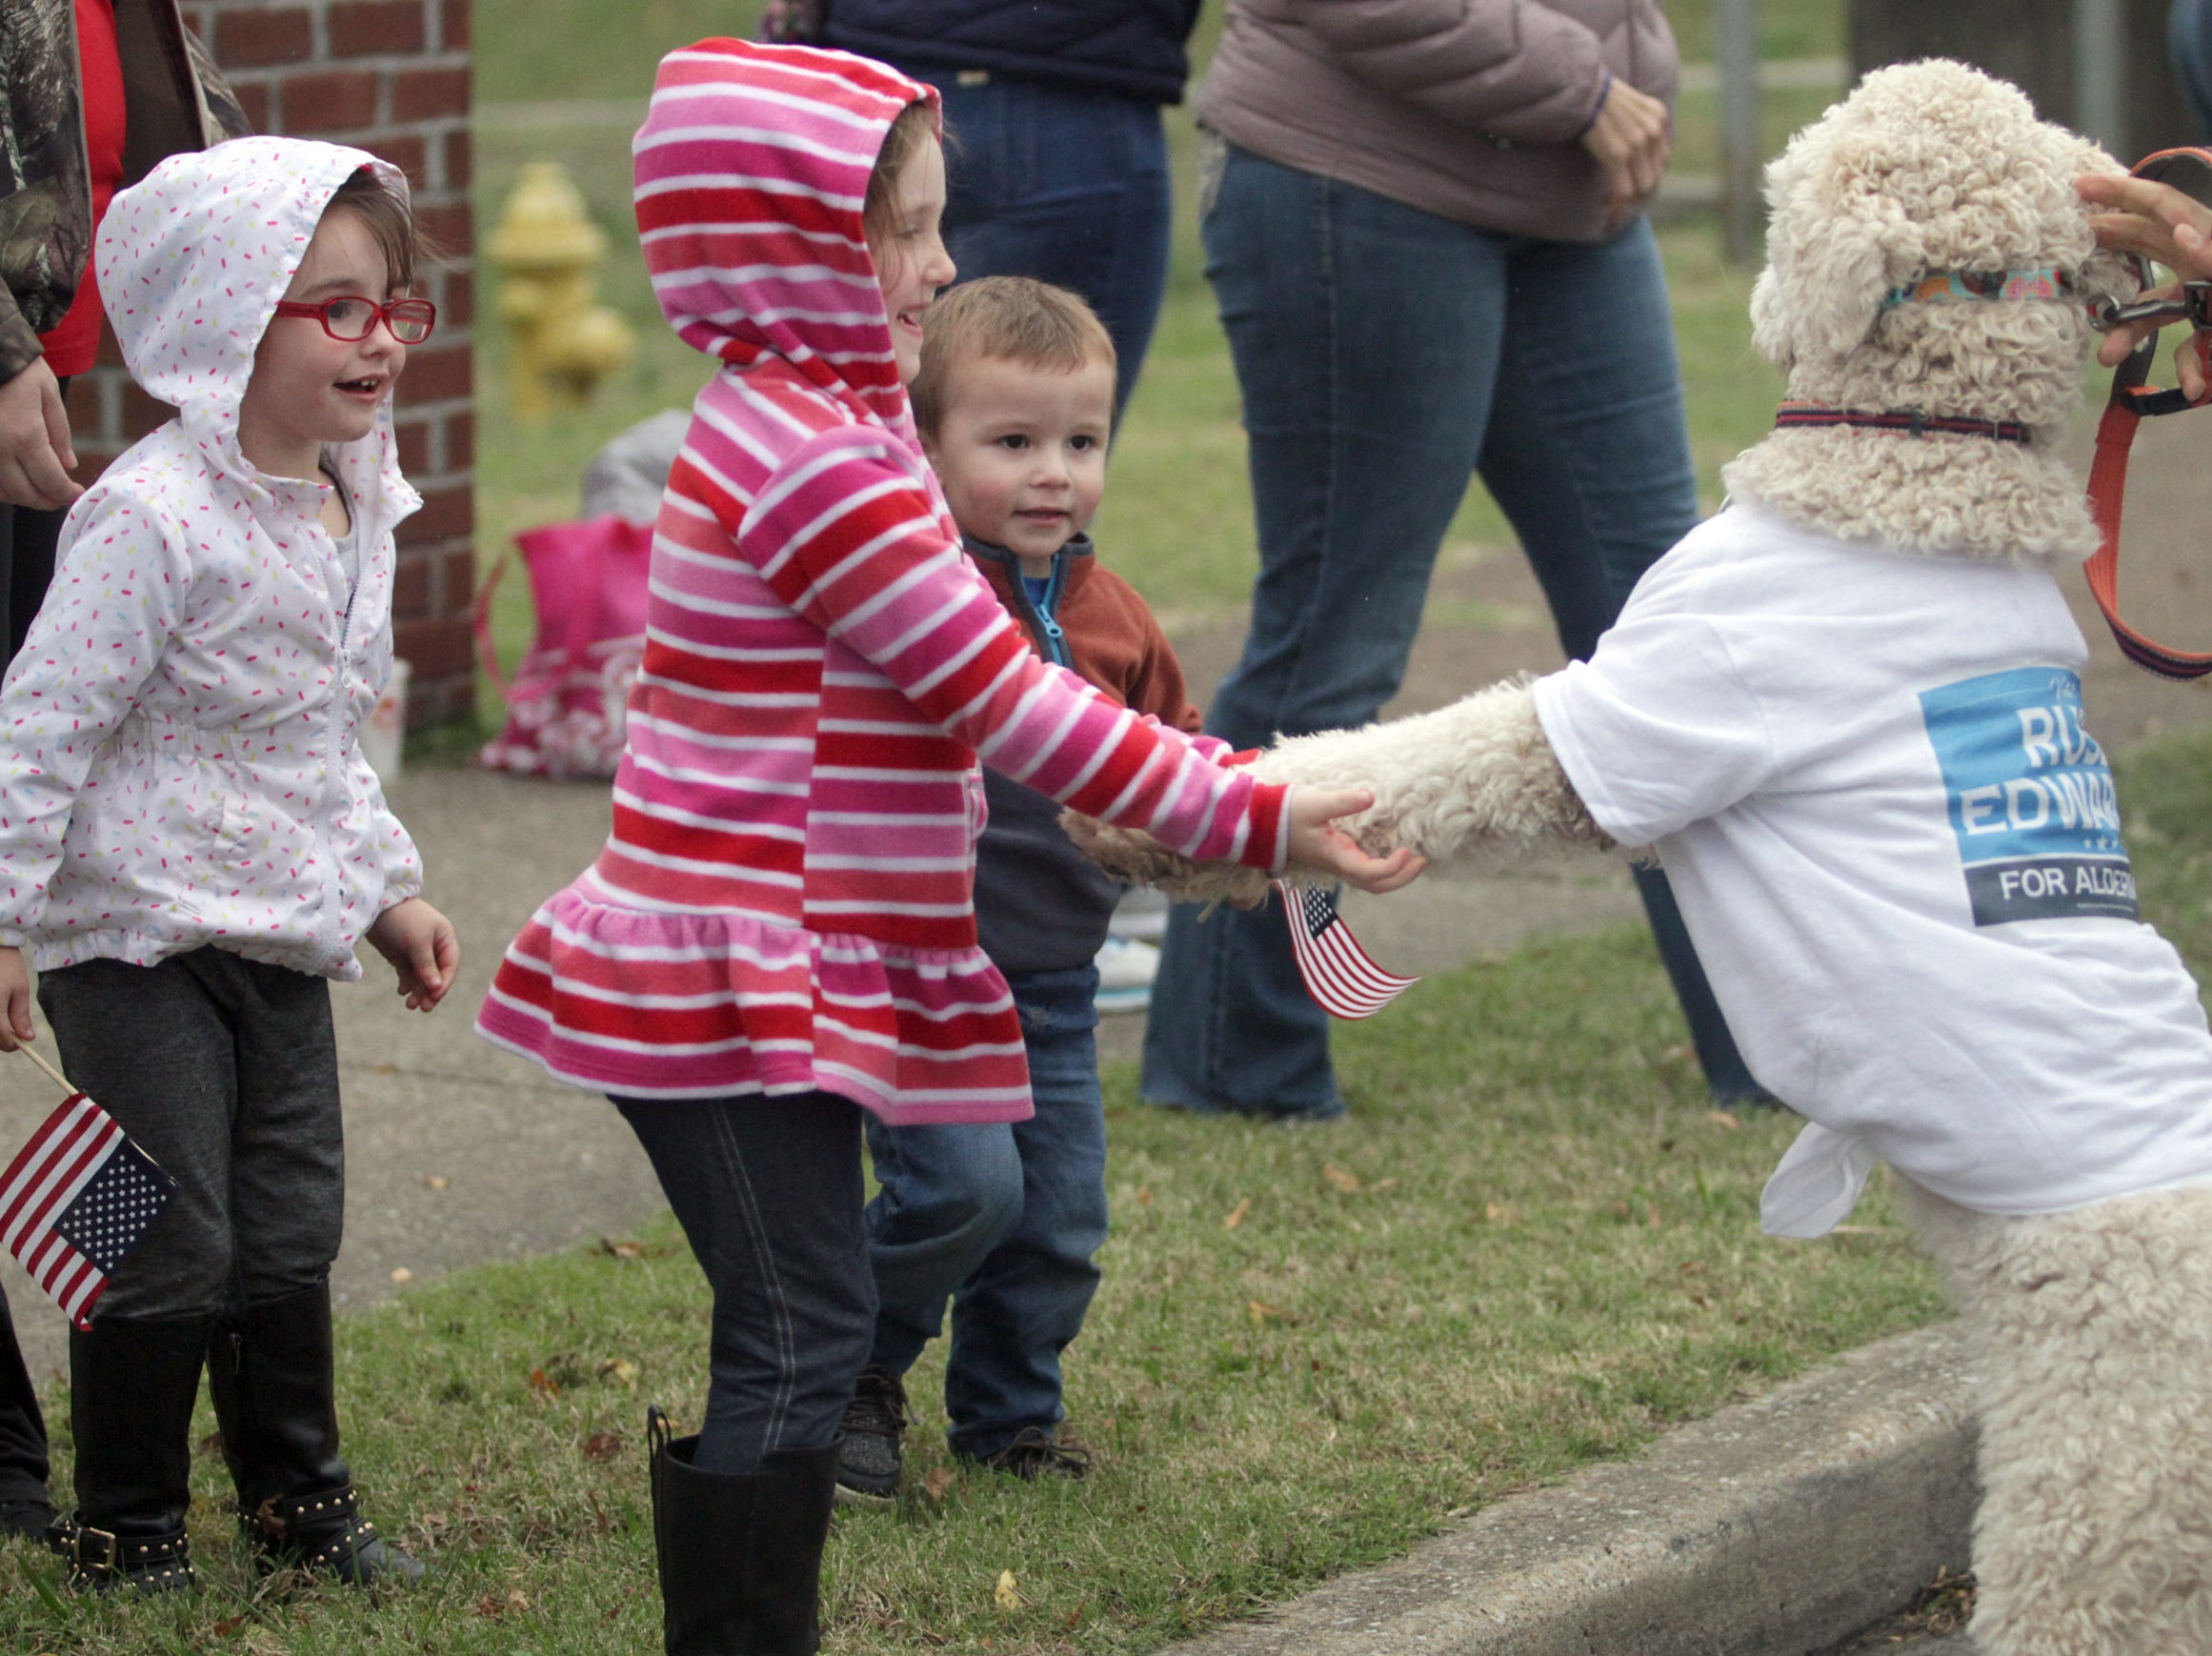 L-R Harmony (3) and Heaven (4) Voules greet a dog walking in the Veterans Day Parade in Hendersonville, TN on Sudnday, November 4, 2018.